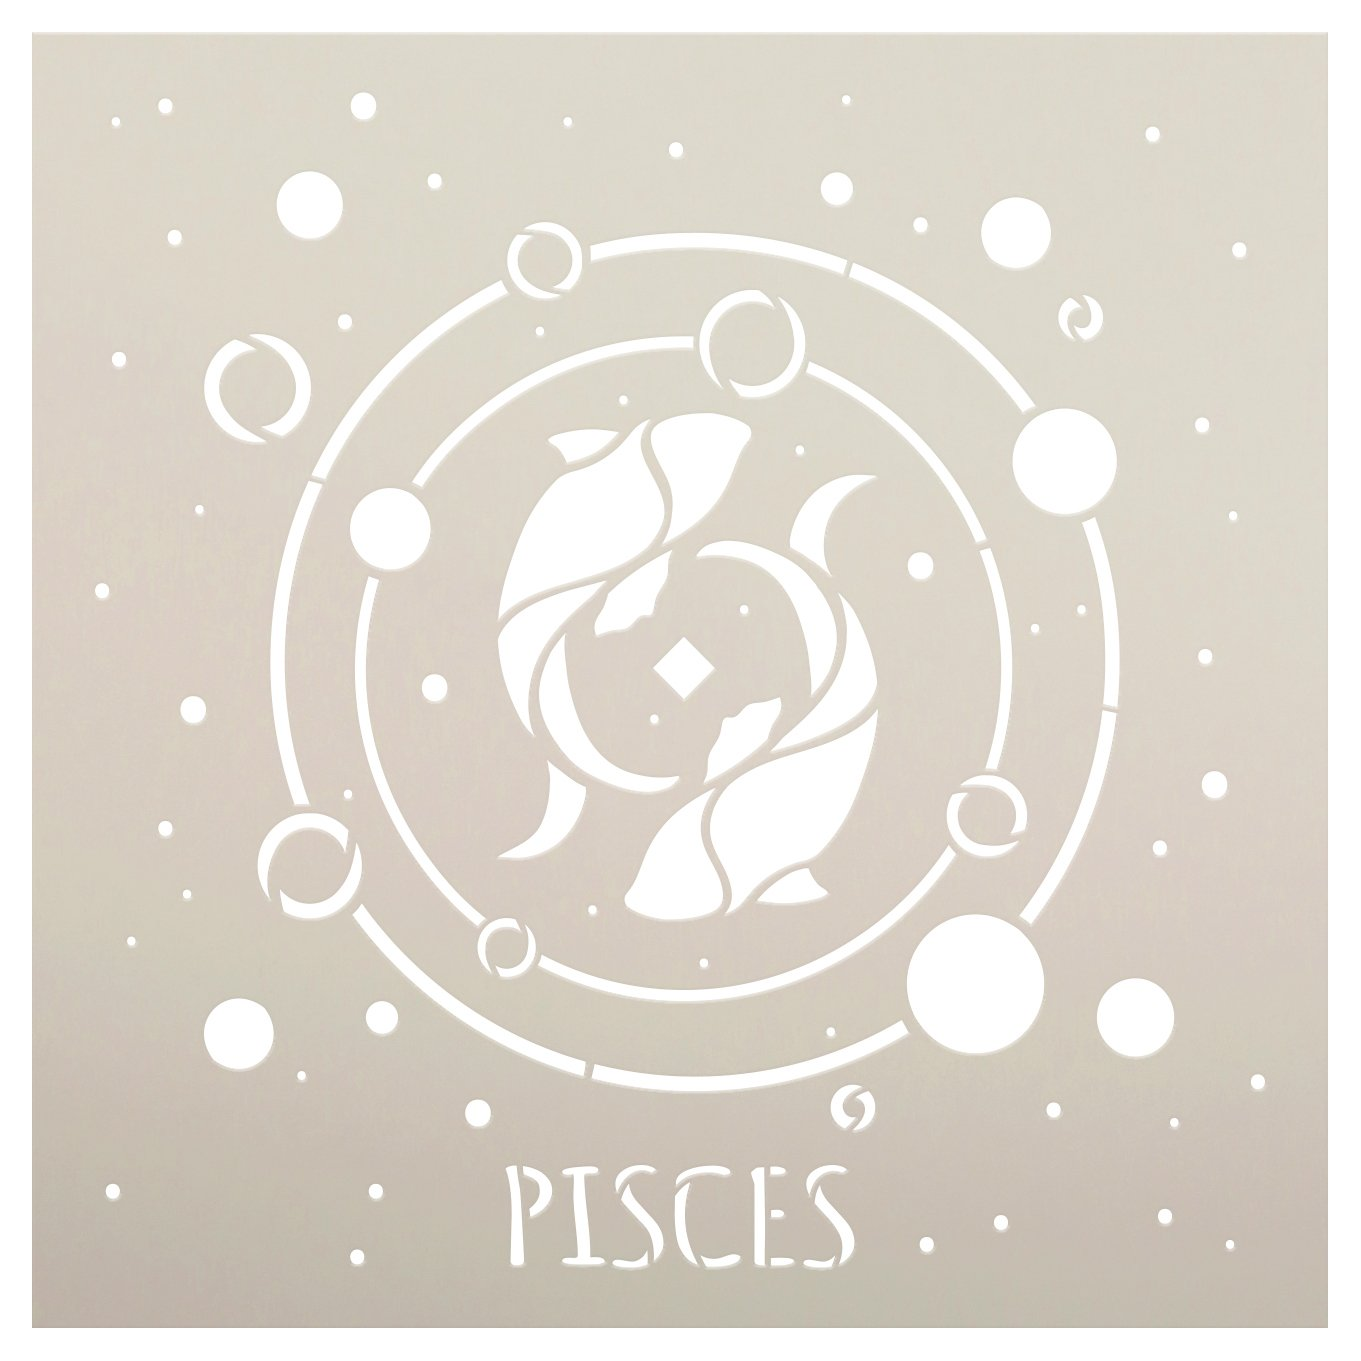 Pisces Astrological Stencil by StudioR12 | DIY Star Sign Zodiac Bedroom & Home Decor | Craft & Paint Celestial Wood Signs | Select Size